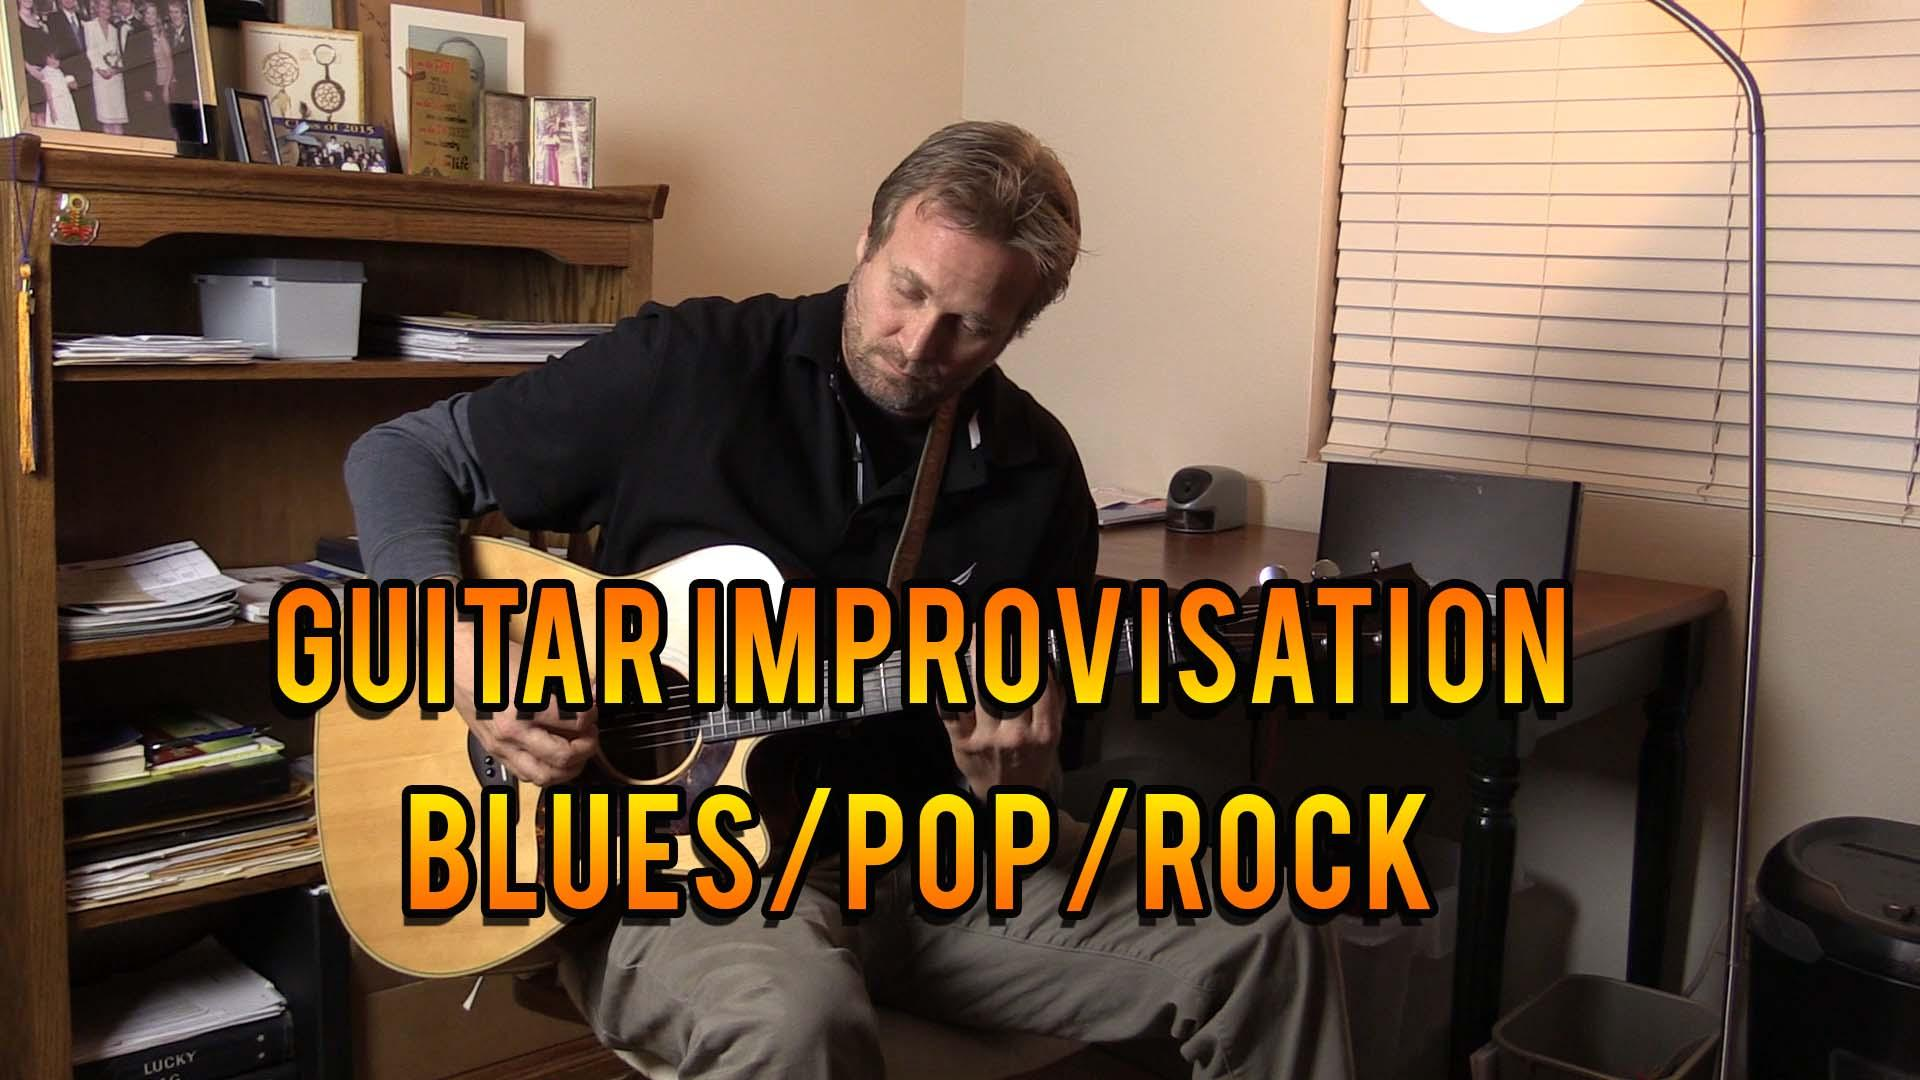 Guitar Improvisation and Soloing: Get started with simple